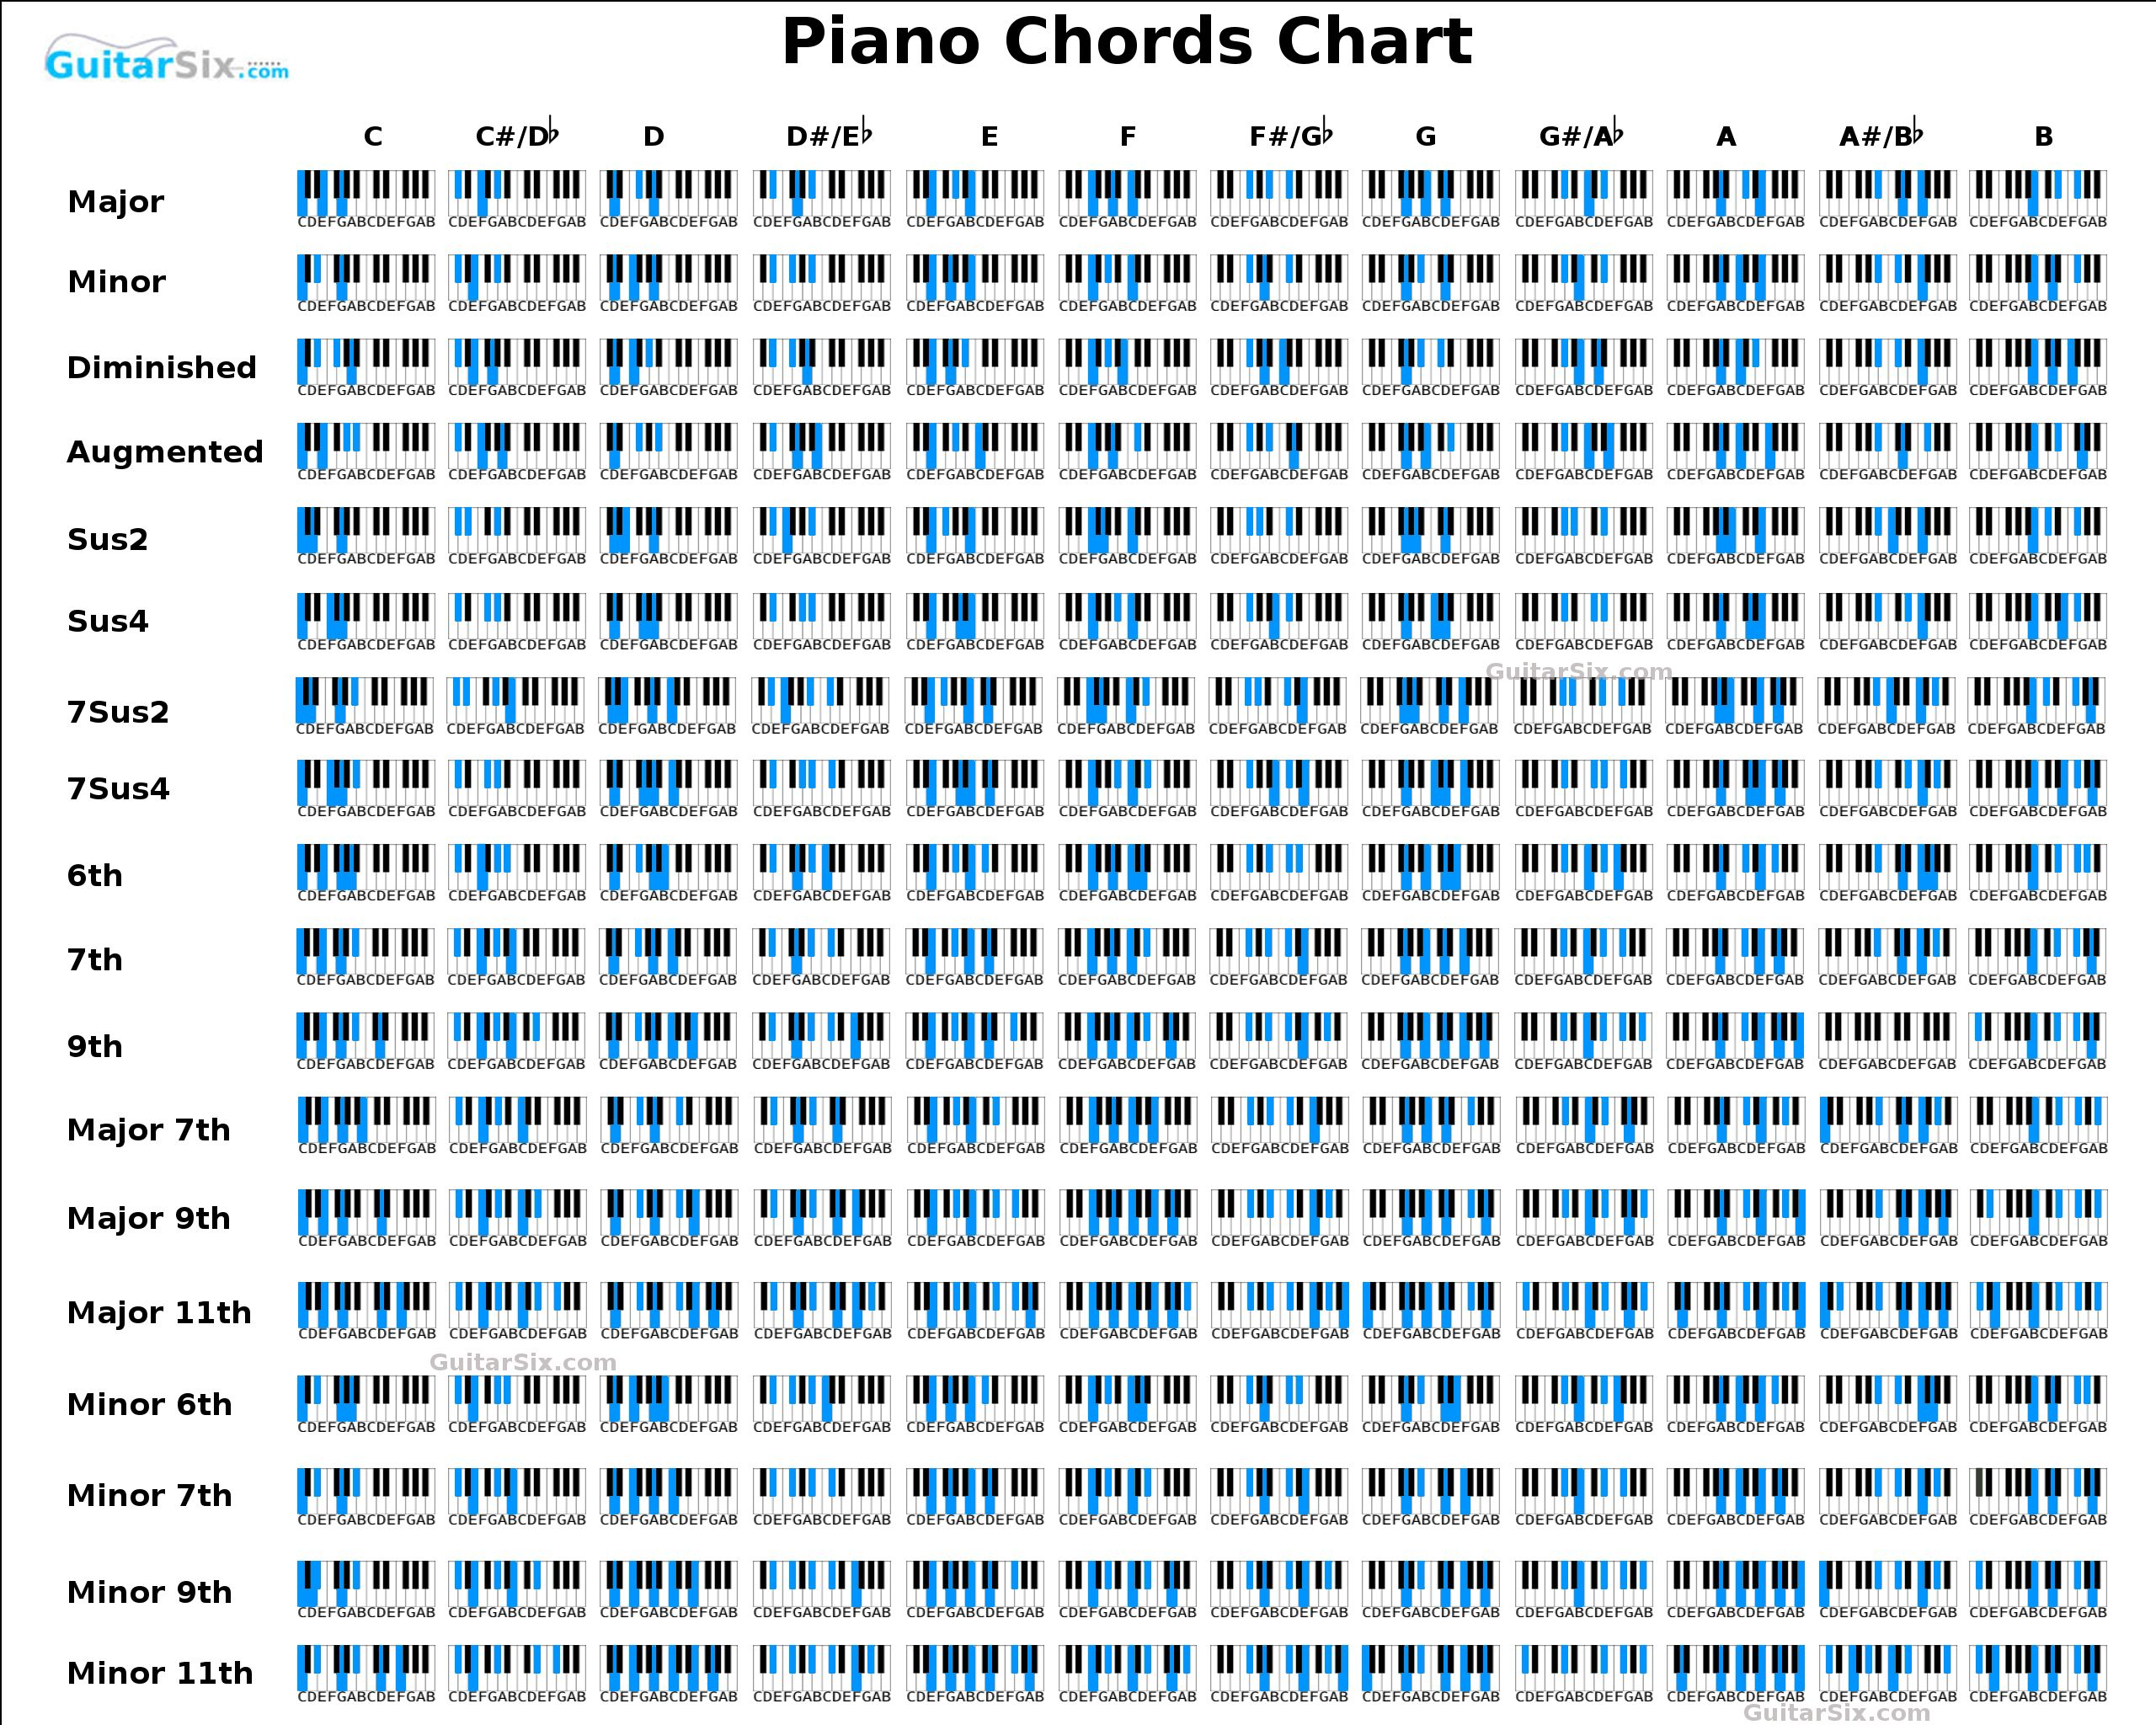 Httpguitarsixdownloadspiano chord chartg music piano chords 28 images piano chords piano notes piano chord chart catskill start guitar and piano chords taralets free piano chord chart kullee hexwebz Choice Image